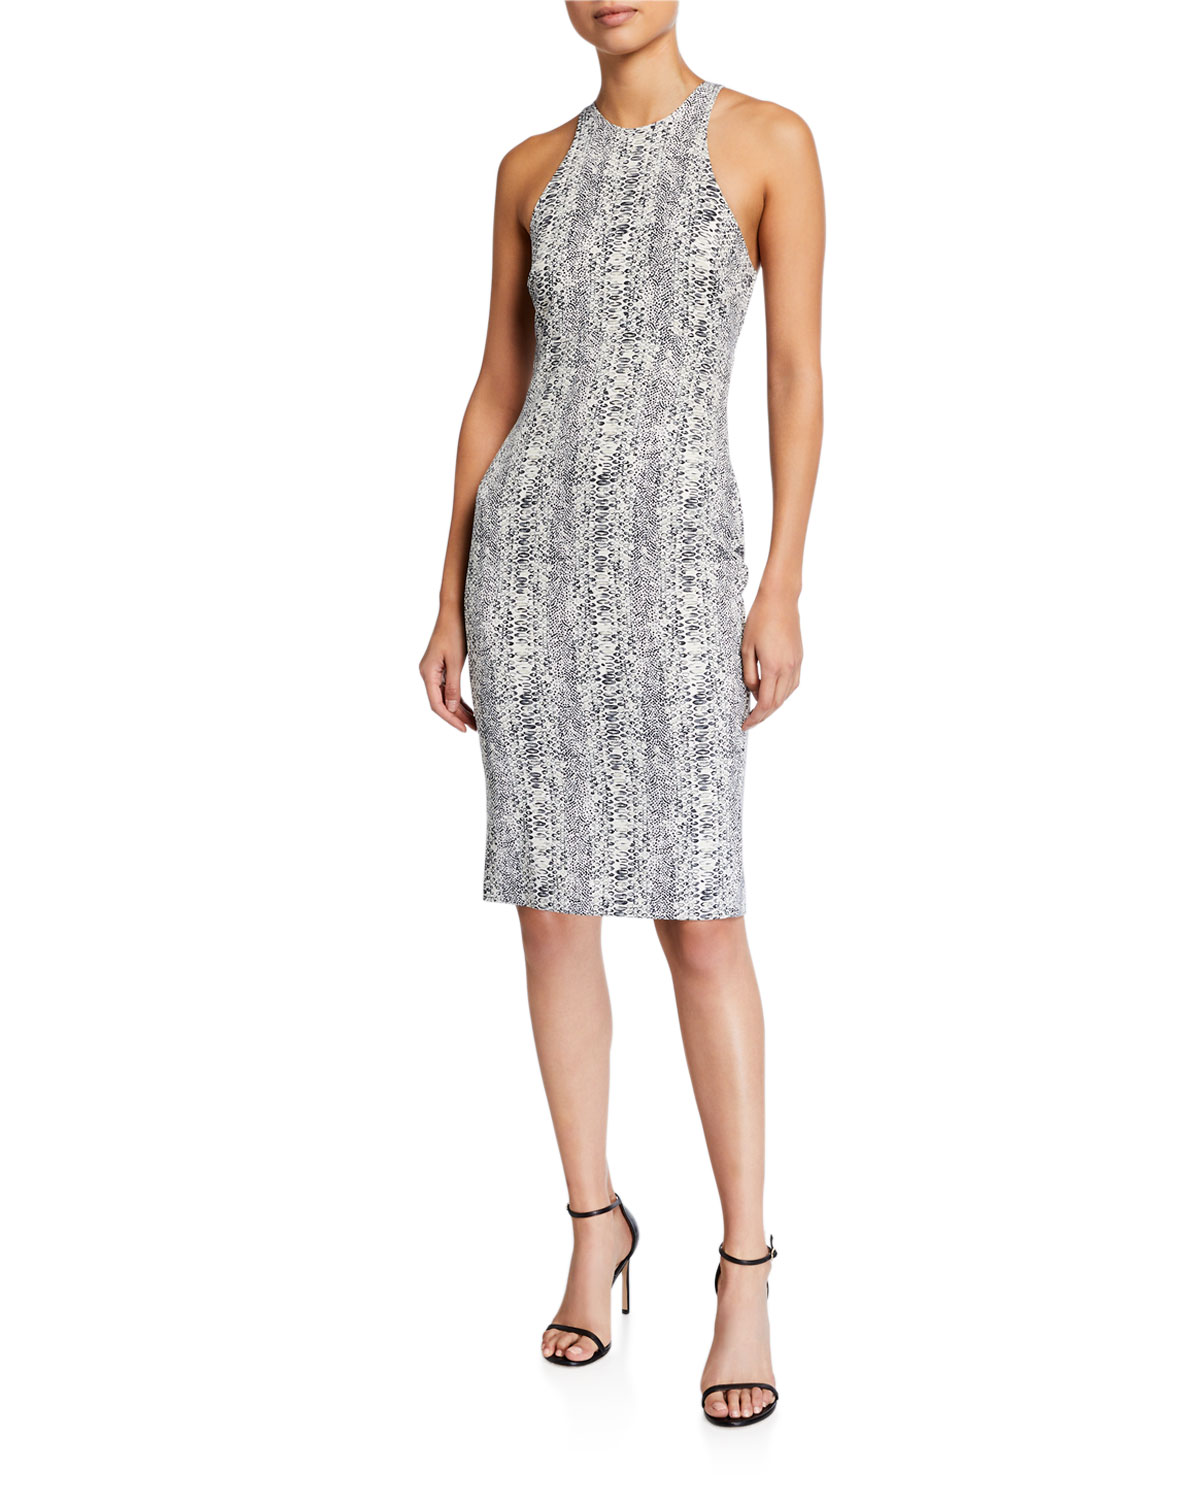 Likely Dresses SIMONS PYTHON-PRINT BODYCON COCKTAIL DRESS